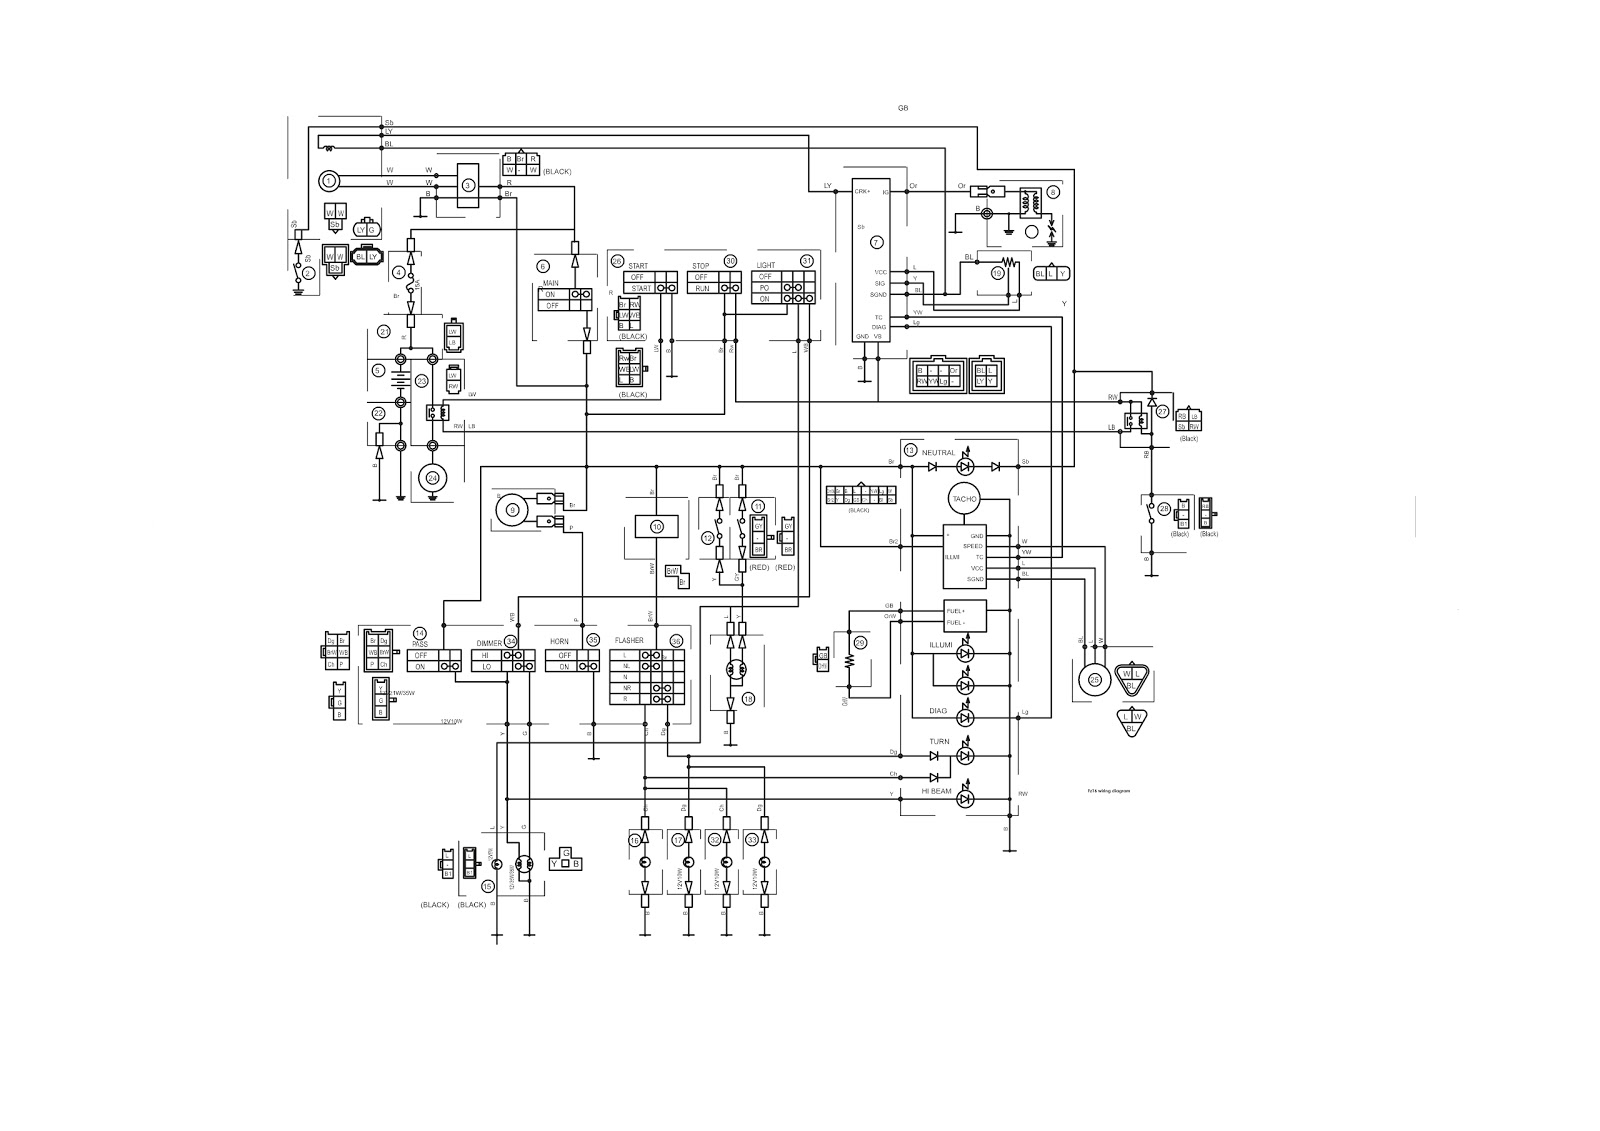 electrical wiring diagram in the philippines with Yamaha Mio Mxi Wiring Diagram on 17th Edition Consumer Unit Wiring Diagram as well Modern Flow Diagram besides Draw A Wiring Diagram likewise Electrical Wiring Bat furthermore Lutron 3 Way Dimmer Switch Wiring Diagram.